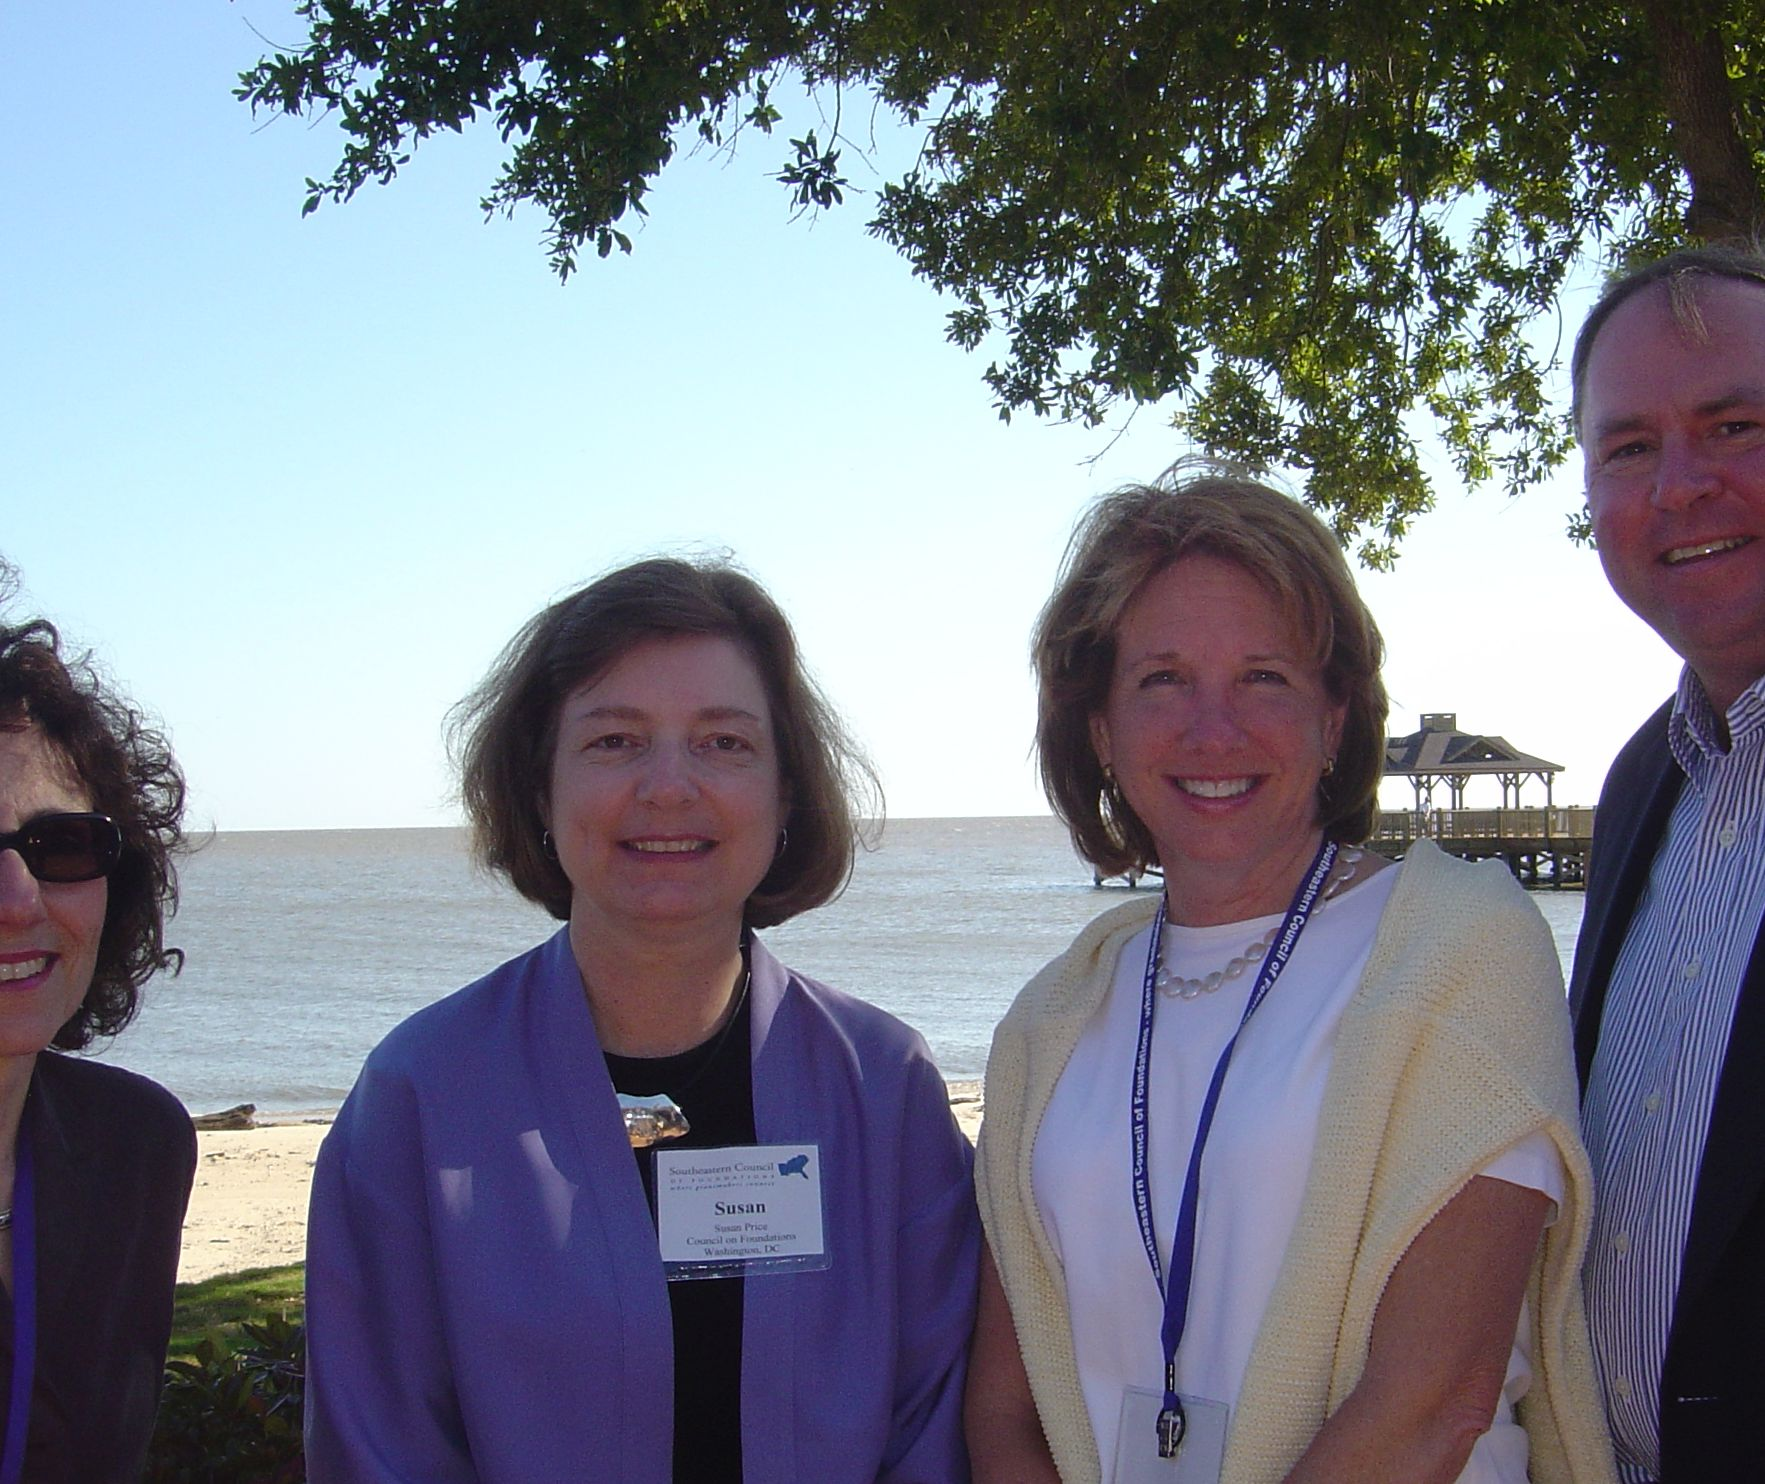 Attendees at SECF's Family Foundations Forum in Point Clear, Alabama